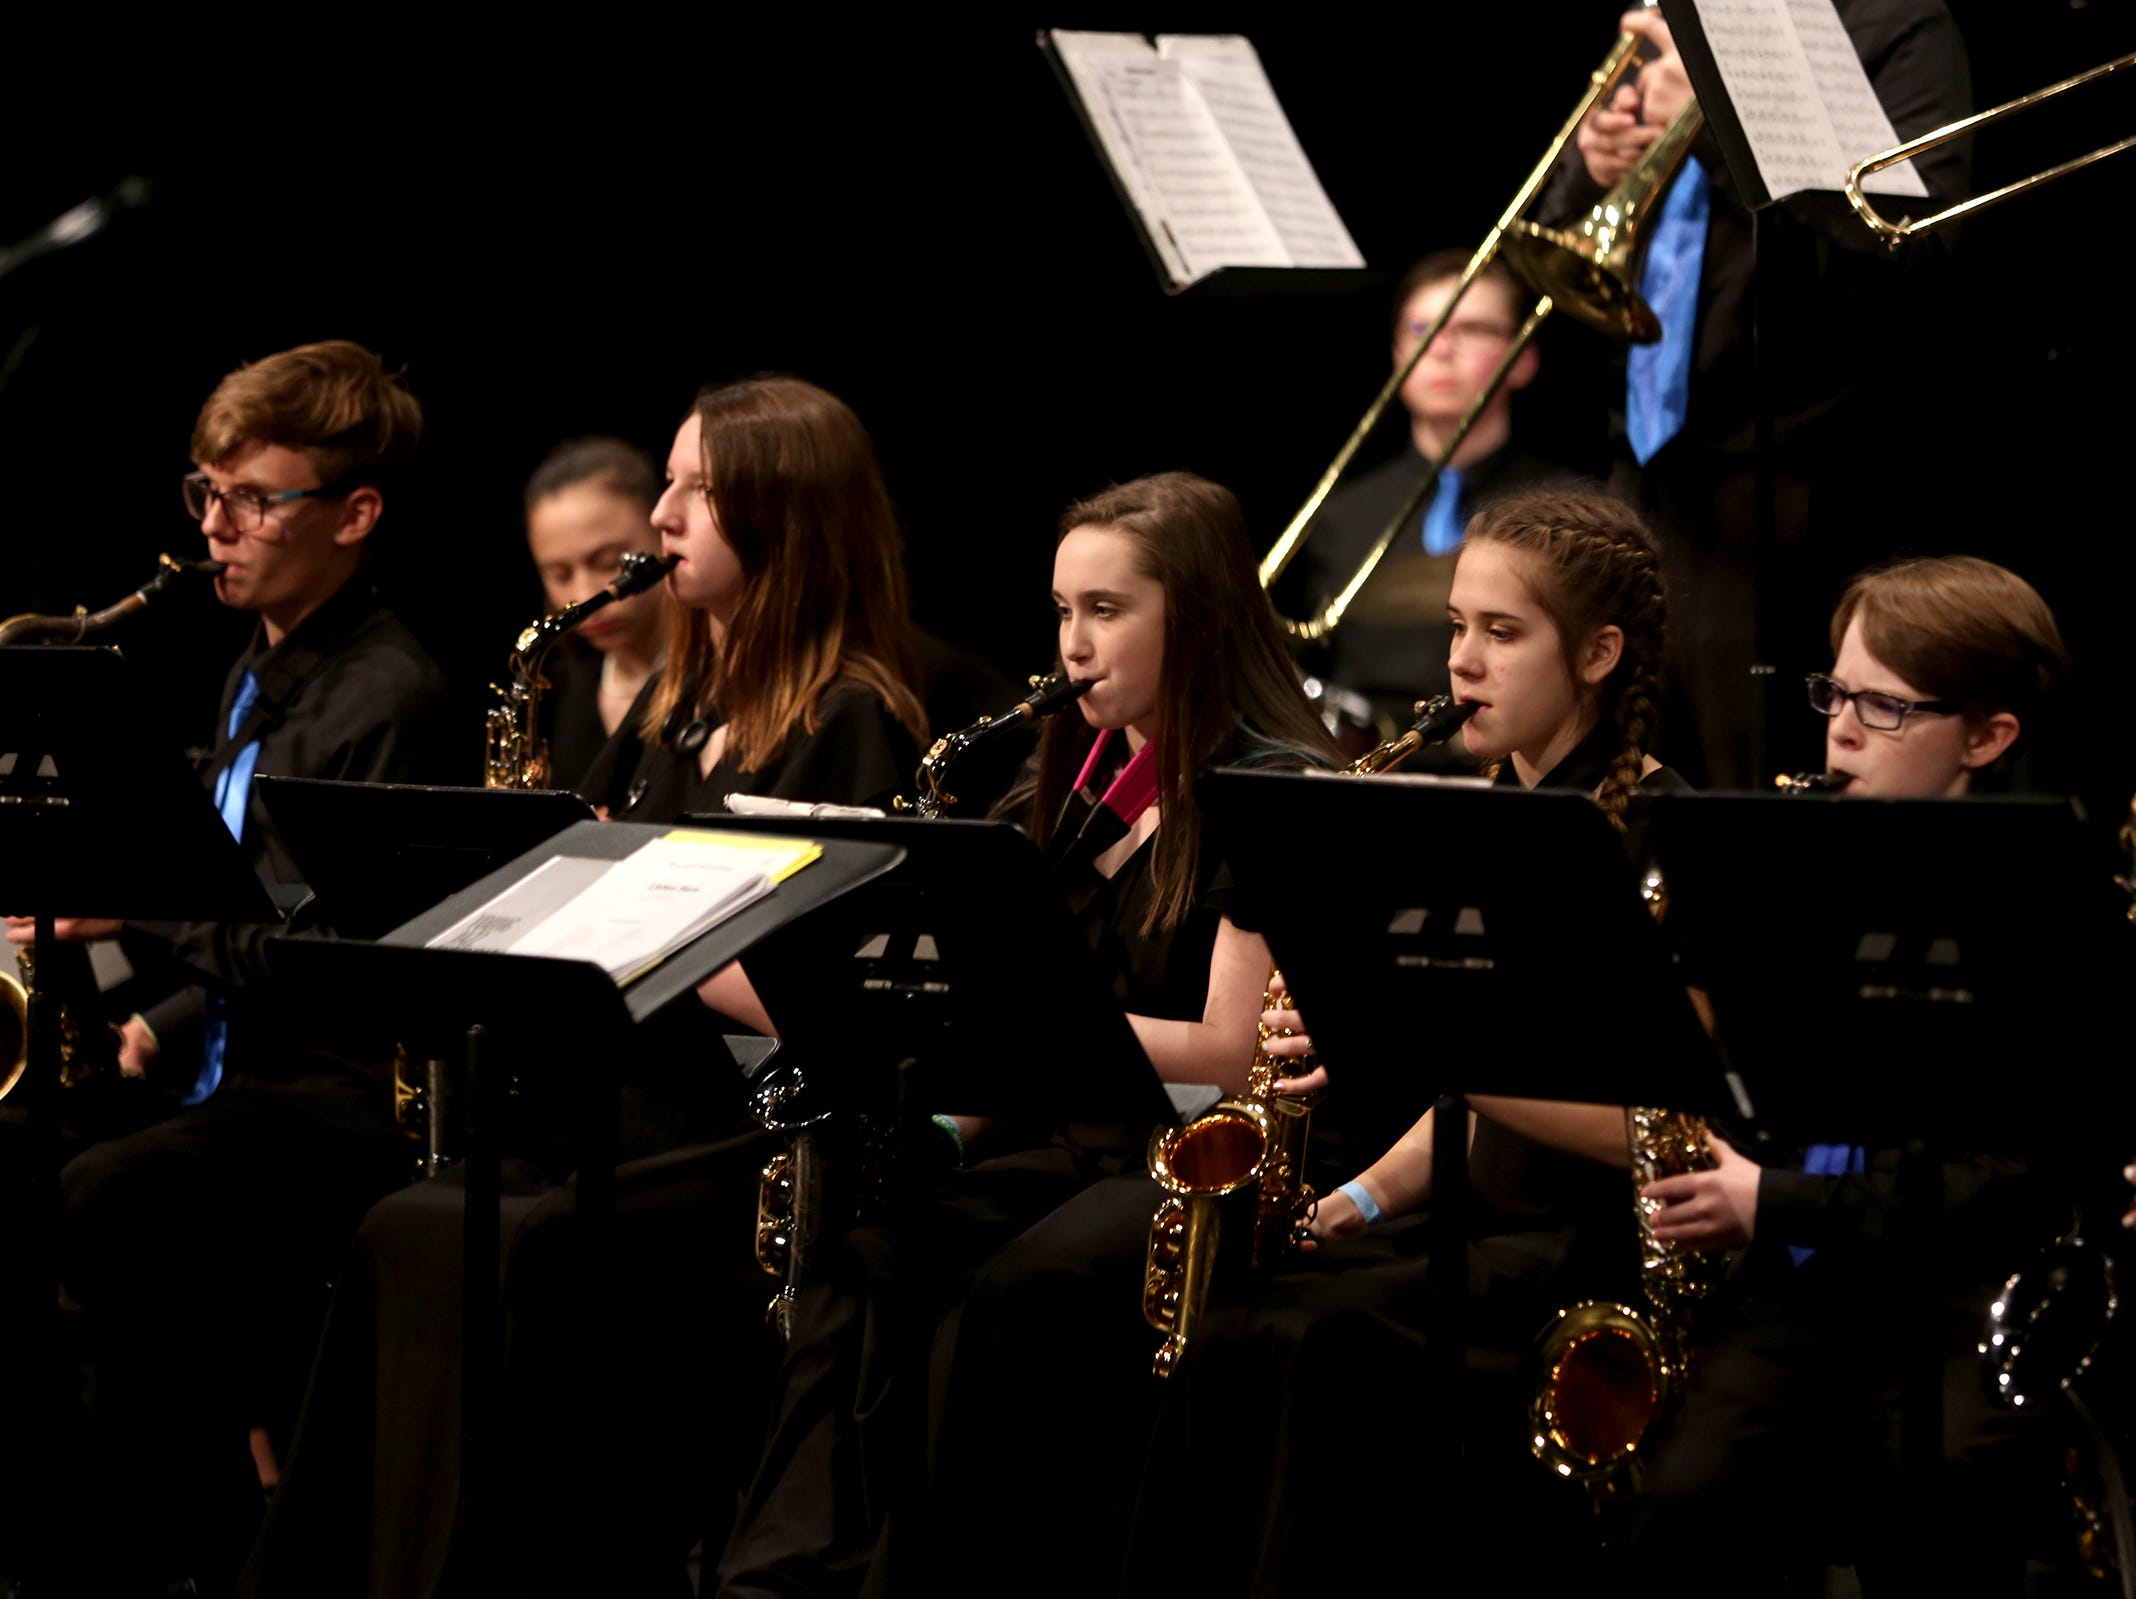 Shasta Middle School students perform at the annual West Salem Jazz Festival at West Salem High School on Saturday, Feb. 9, 2019.